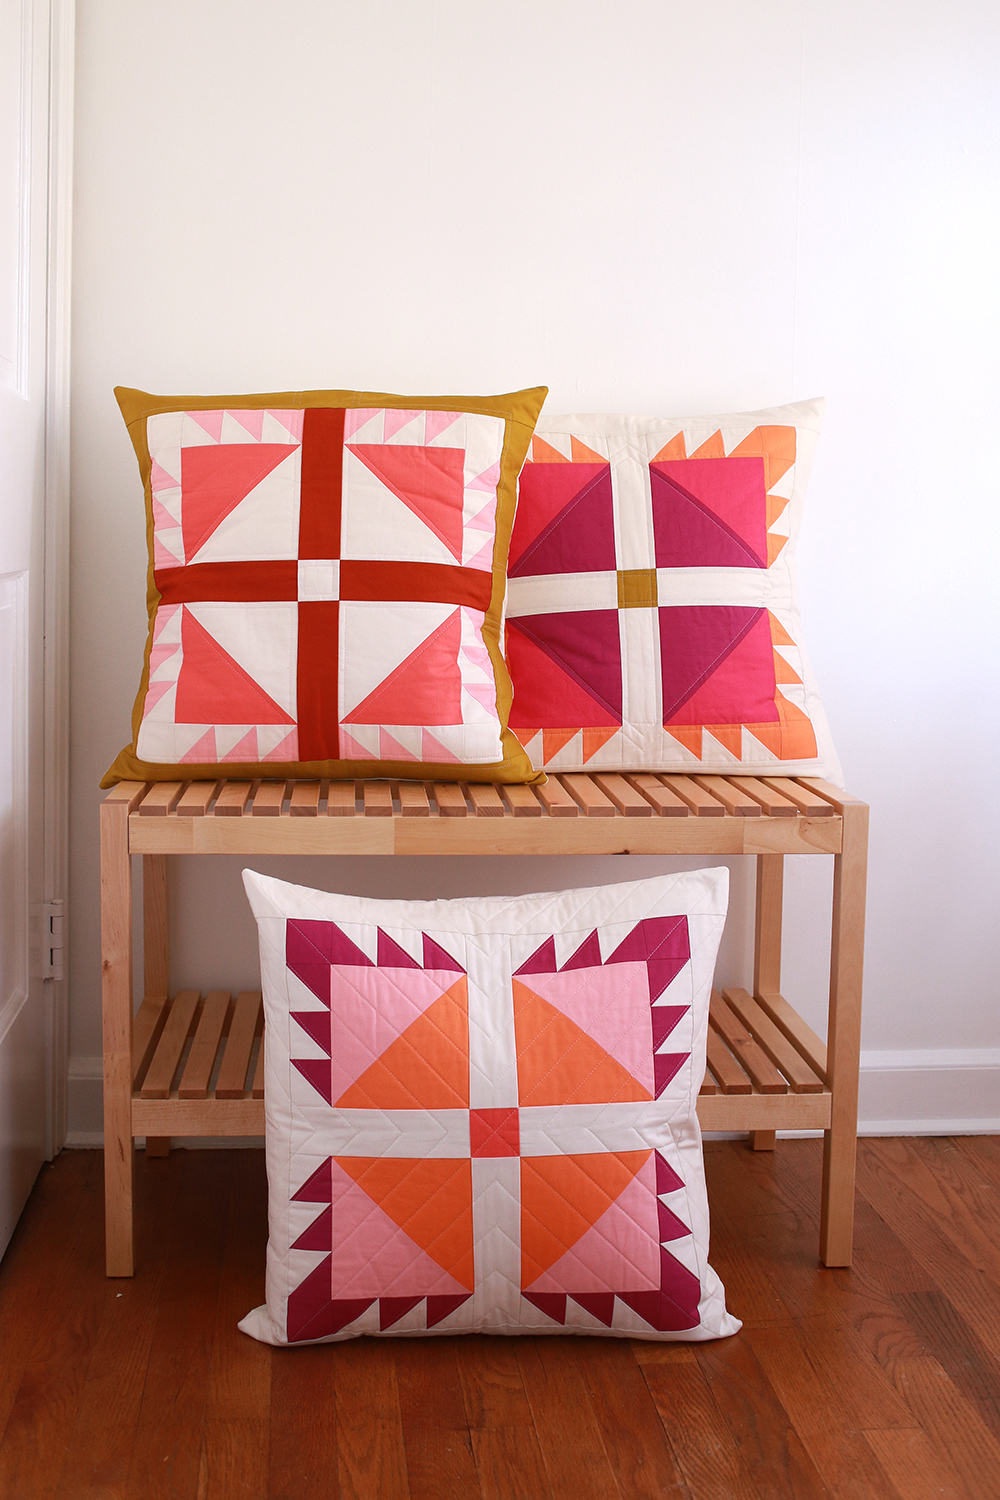 Bear Paw Pillows in Quilts & More Winter 2019